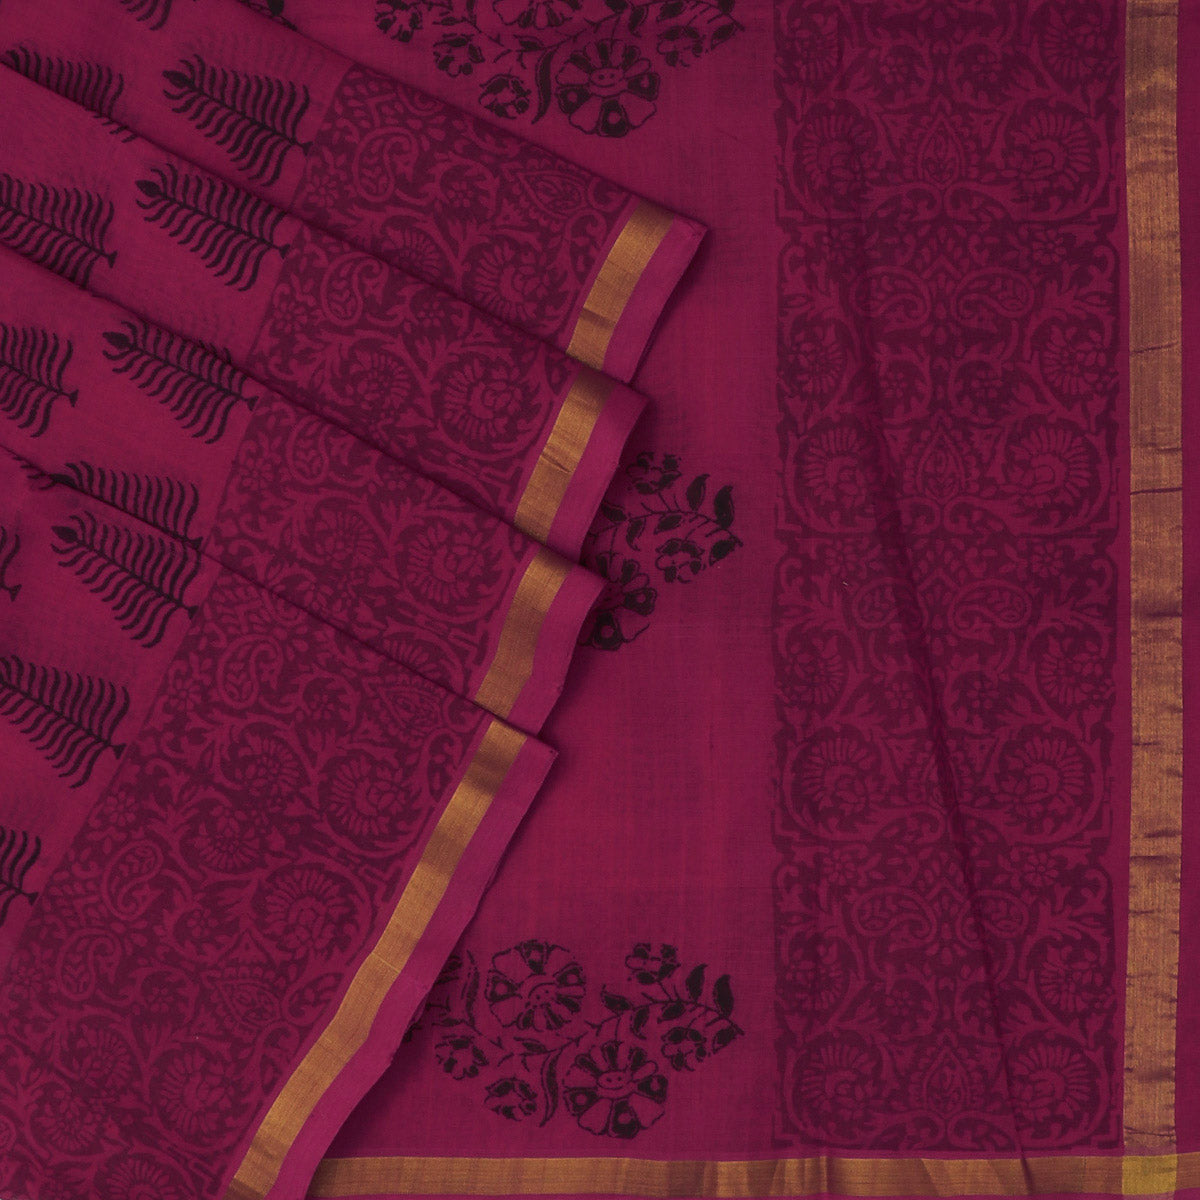 Printed Silk Cotton Saree Pink with simple zari border